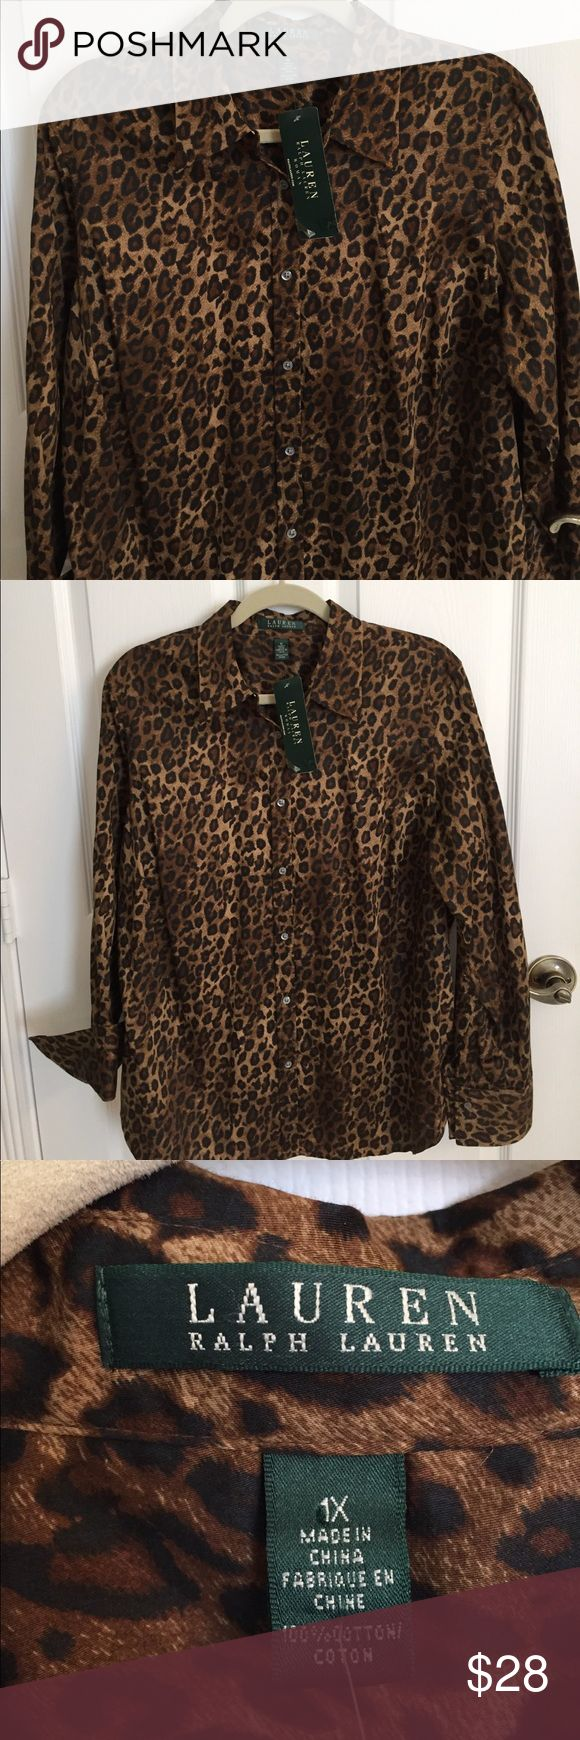 🆕Ralph Lauren Leopard print shirt in 100% Cotton Beautiful 100% Sateen Cotton Ralph Lauren long sleeve button down top. Very nice detailing and classy! Sleeves can be cuffed up or worn down. Bought it for myself but never got a chance to wear it as I lost weight 😊. New, never worn, with attached tag. Lauren Ralph Lauren Tops Button Down Shirts